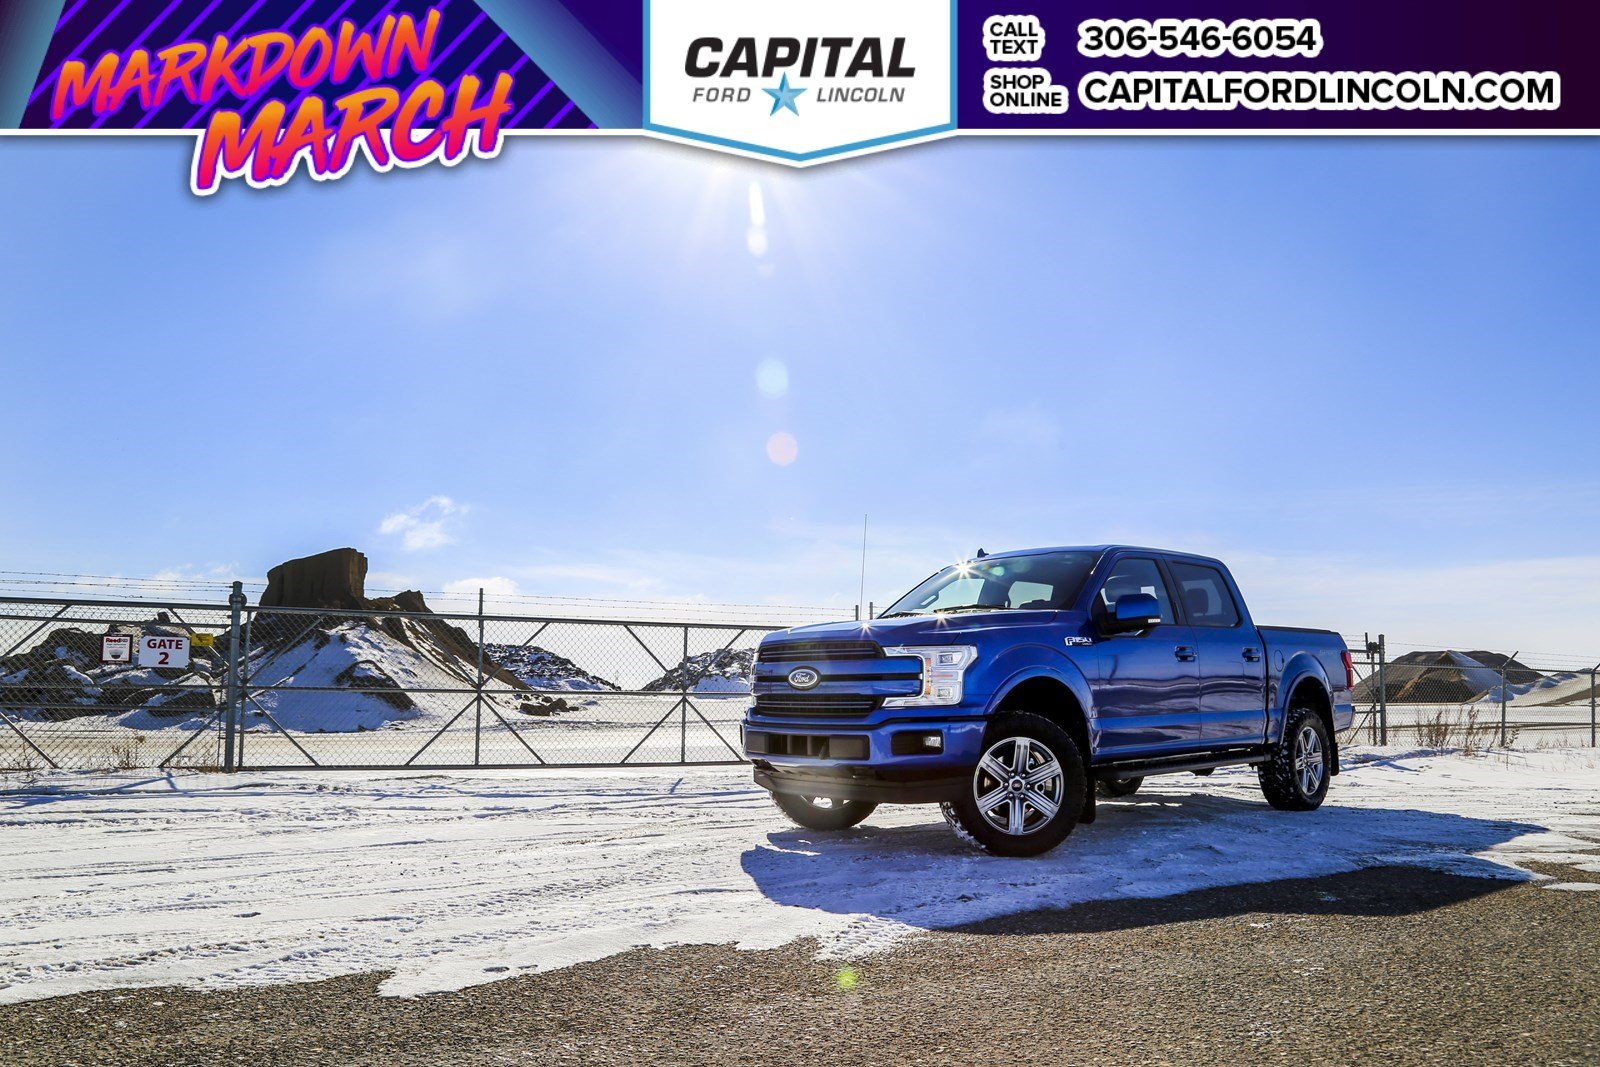 New 2018 Ford F-150 Lariat *CAPITAL CONCEPTS*